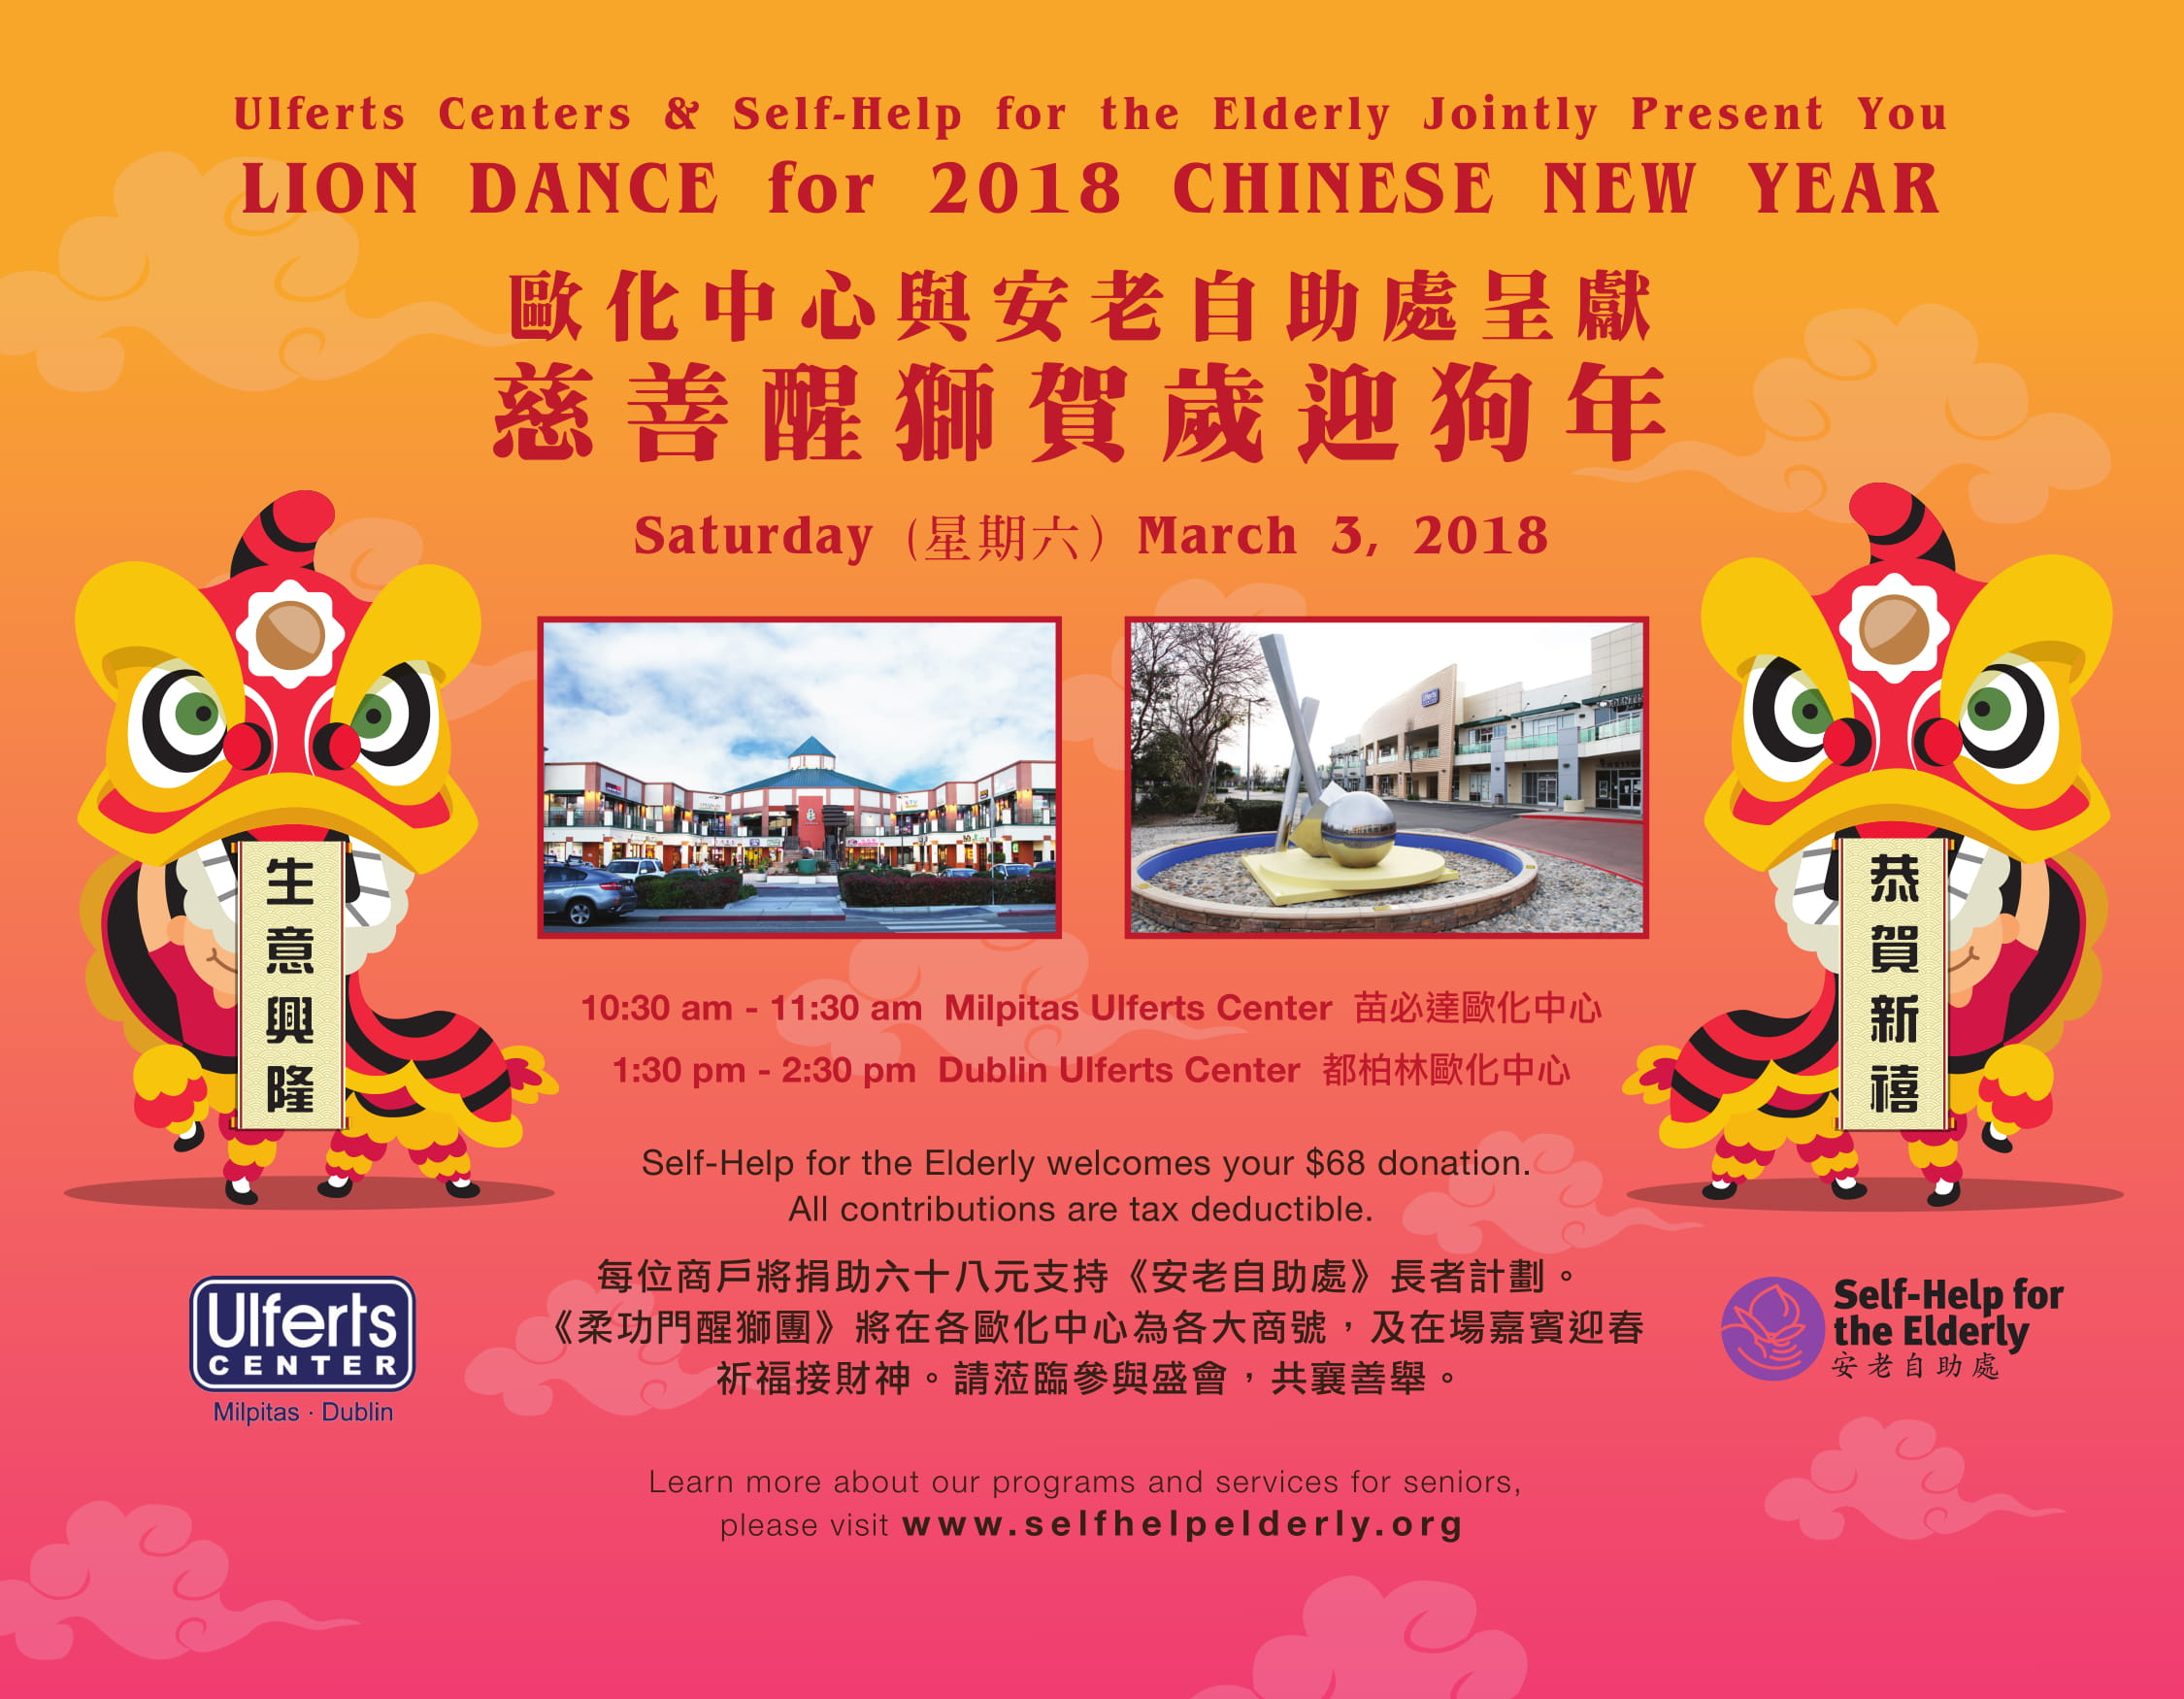 Lion Dance Event Starts on Saturday (星期六) at 10:30 am, March 3  in Milpitas Ulferts Center